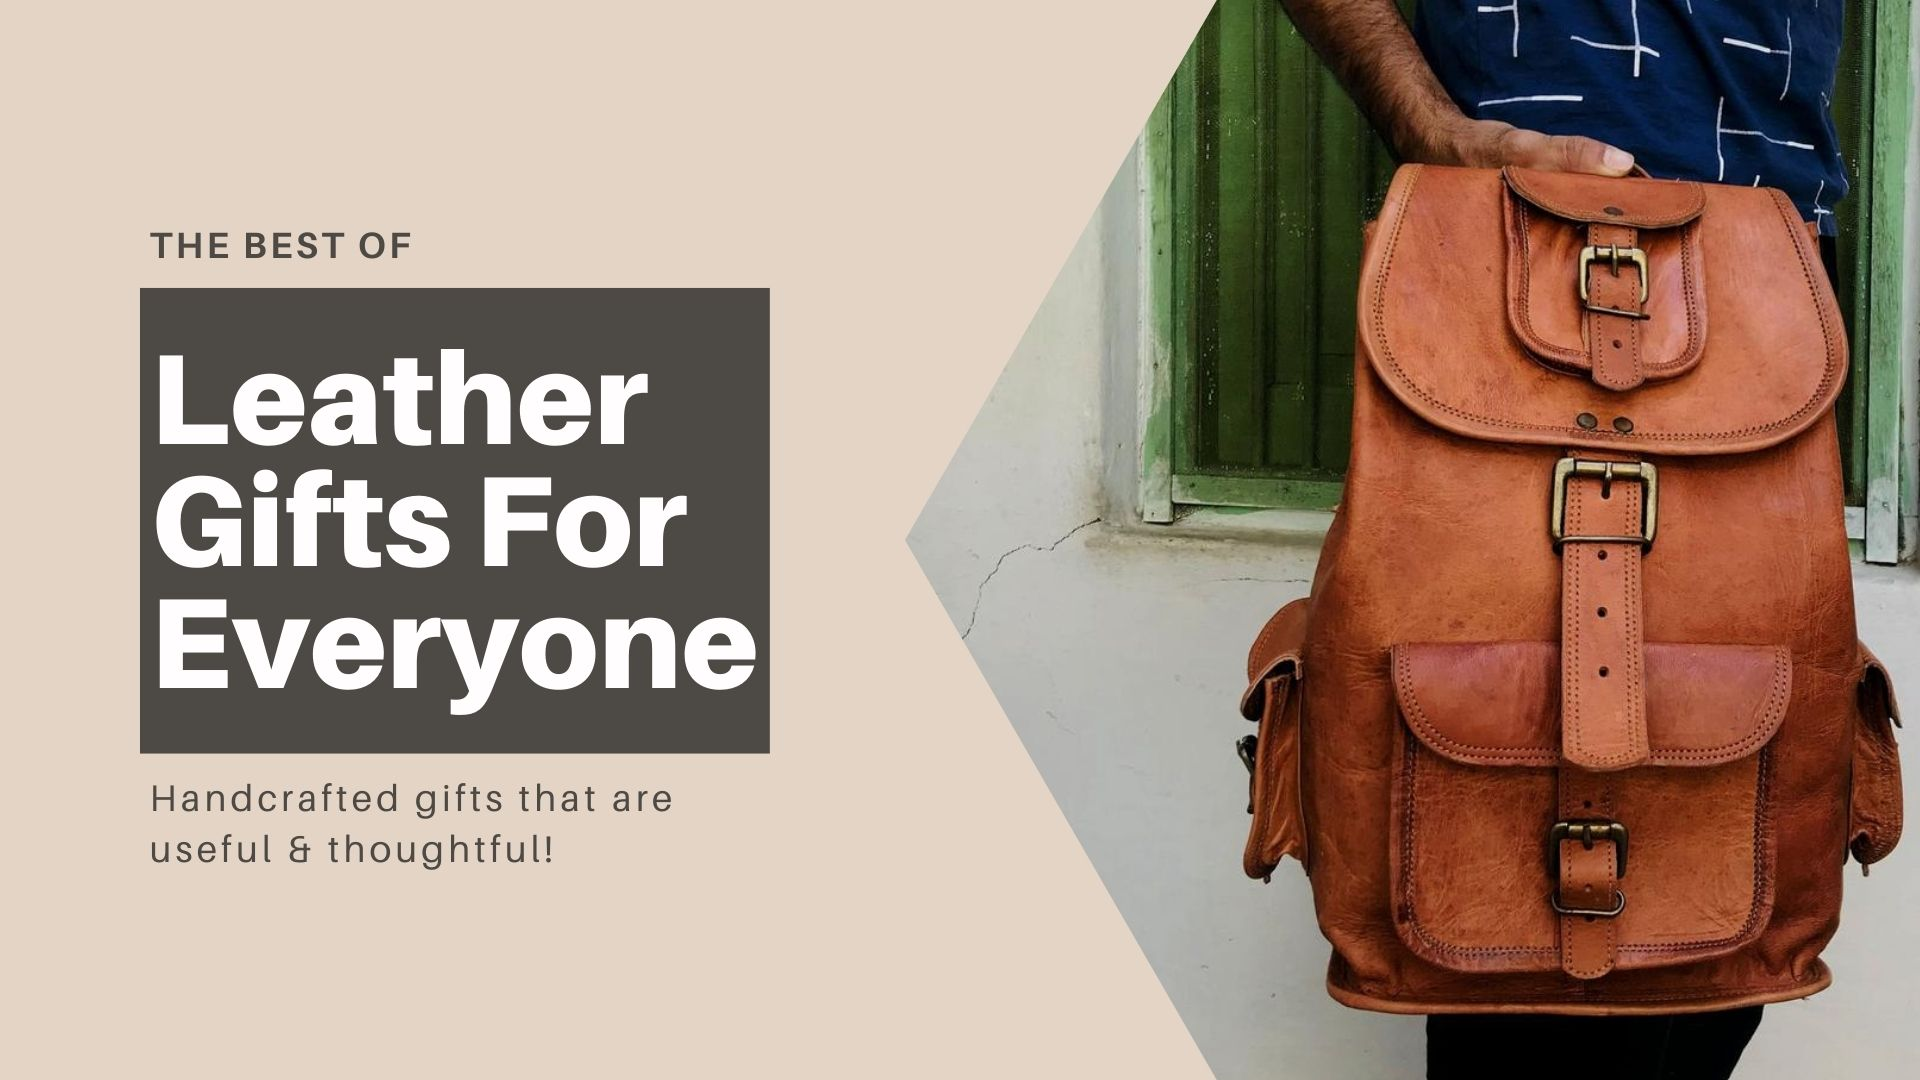 Leather Gifts: Handcrafted Gifts for Men & Women